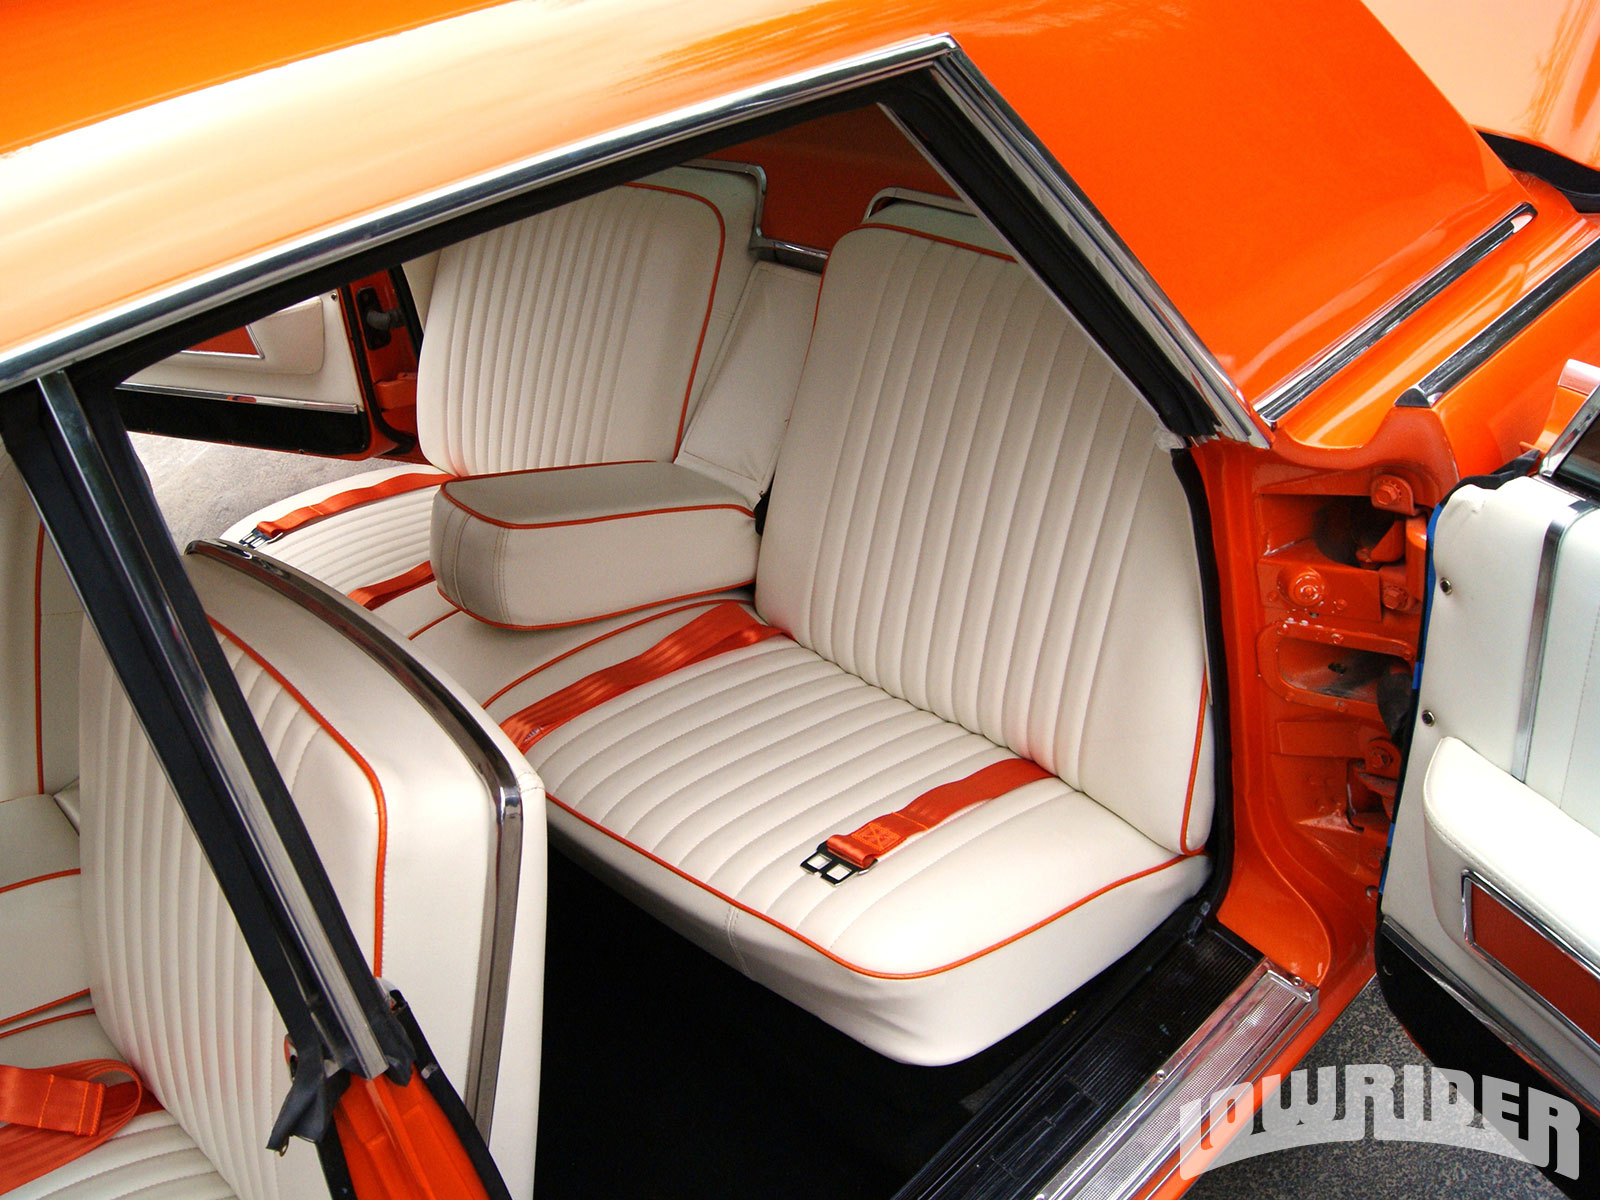 1964 lincoln continental interior lowrider for 2015 lincoln continental interior